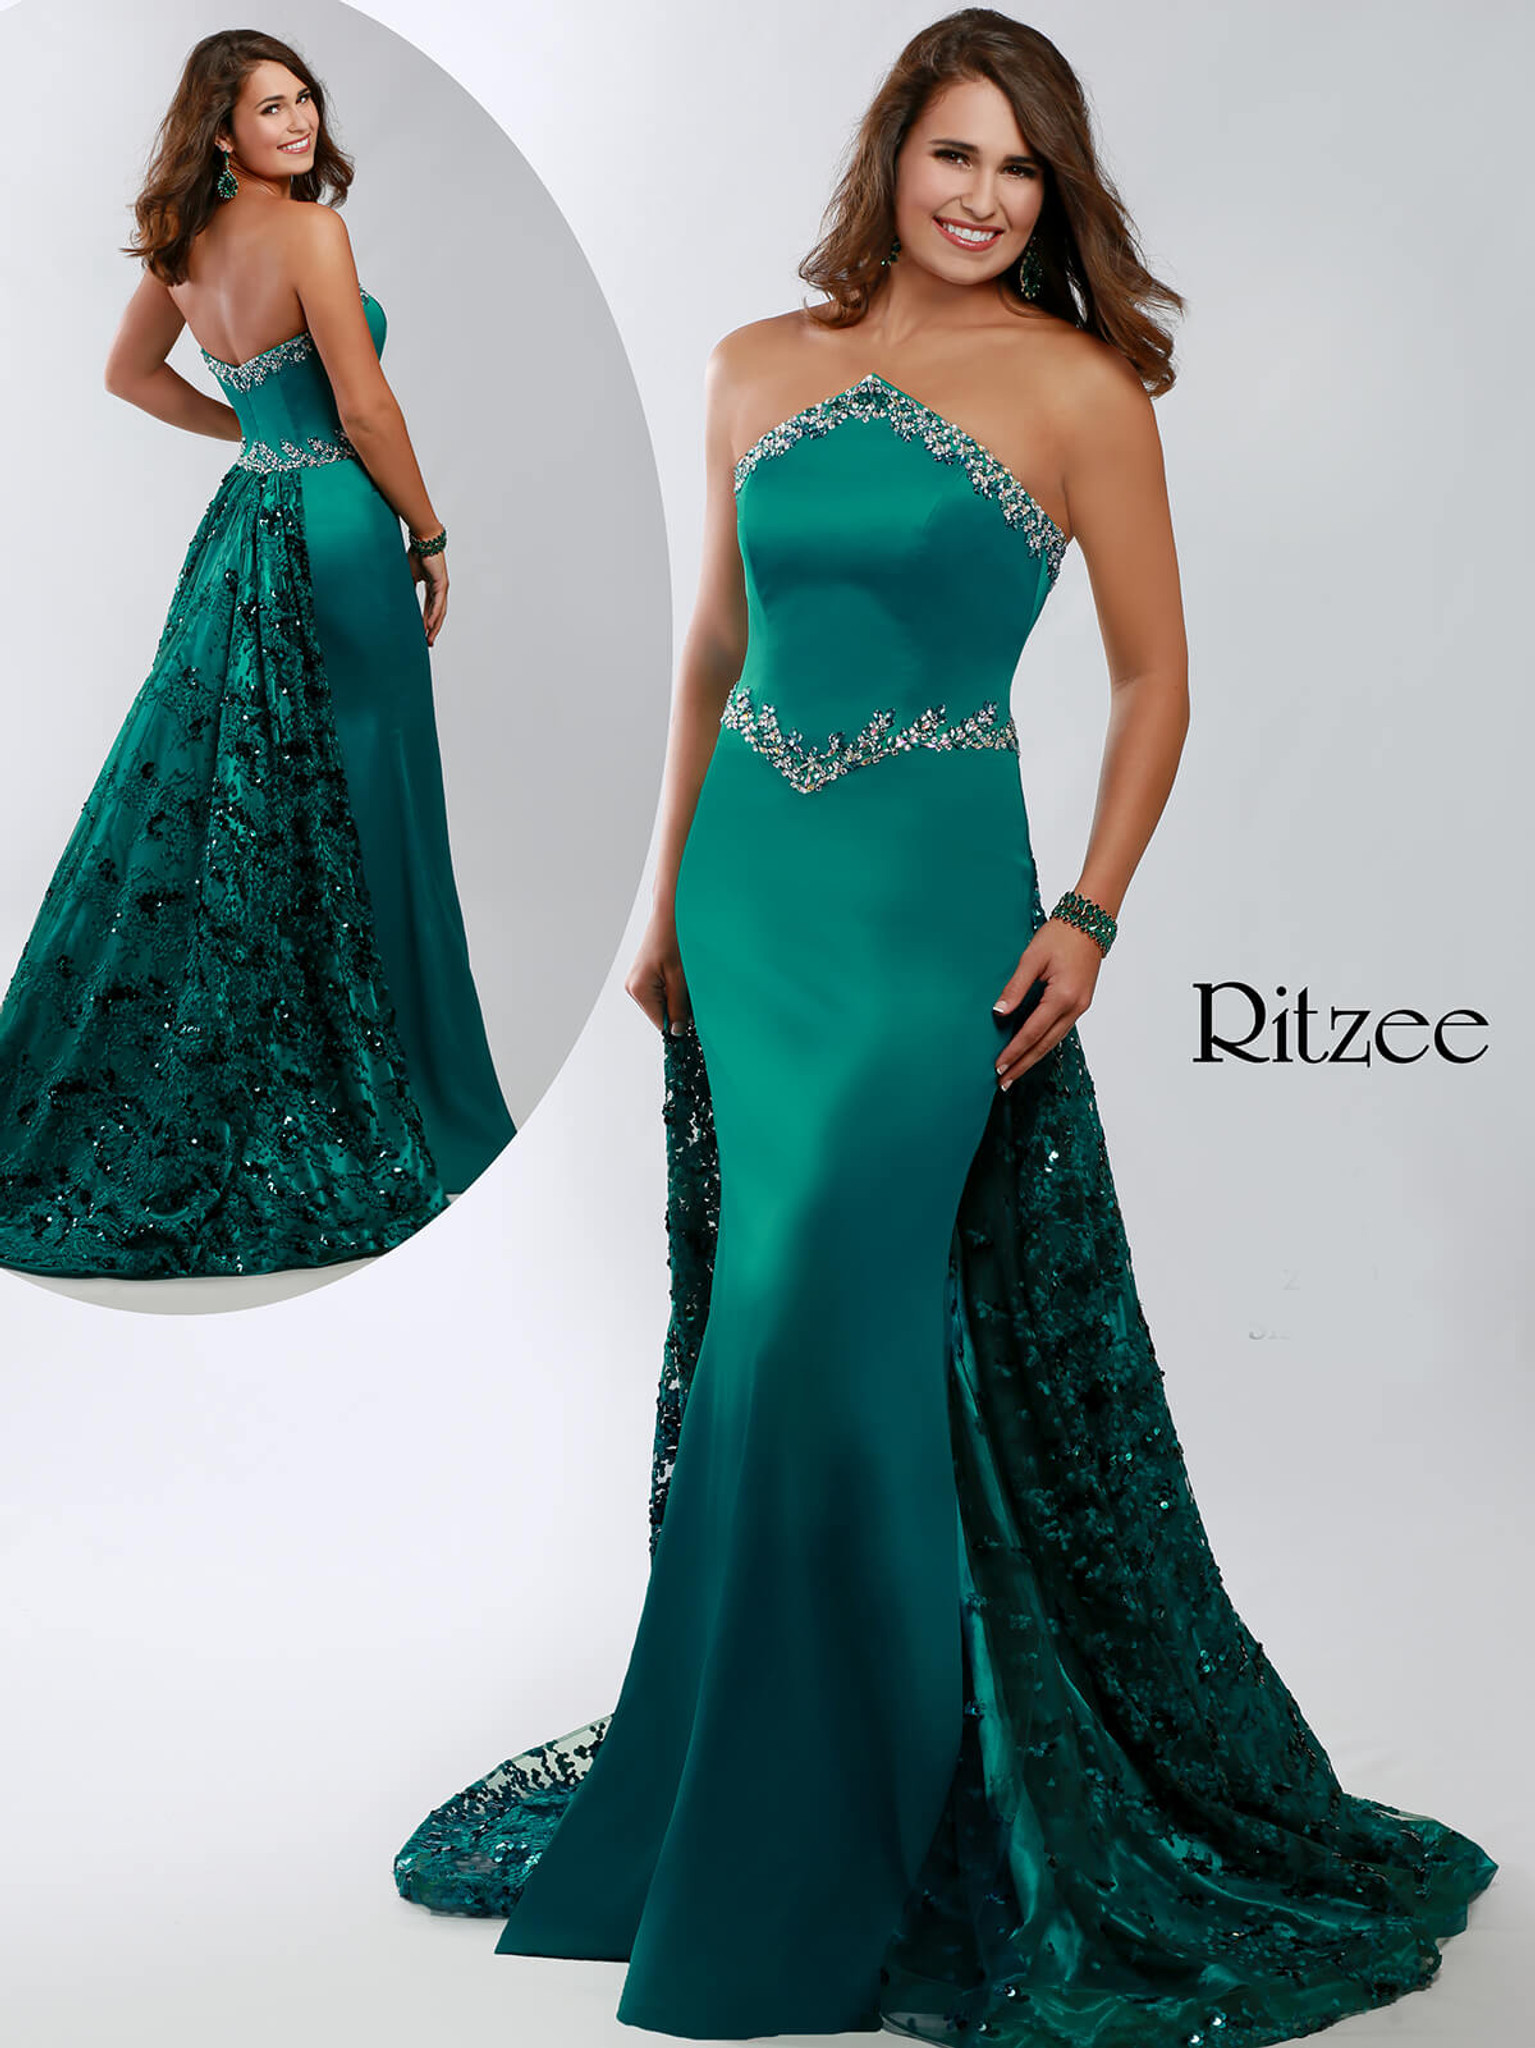 Mermaid Ritzee Originals 3640 Pageant Dress PageantDesigns